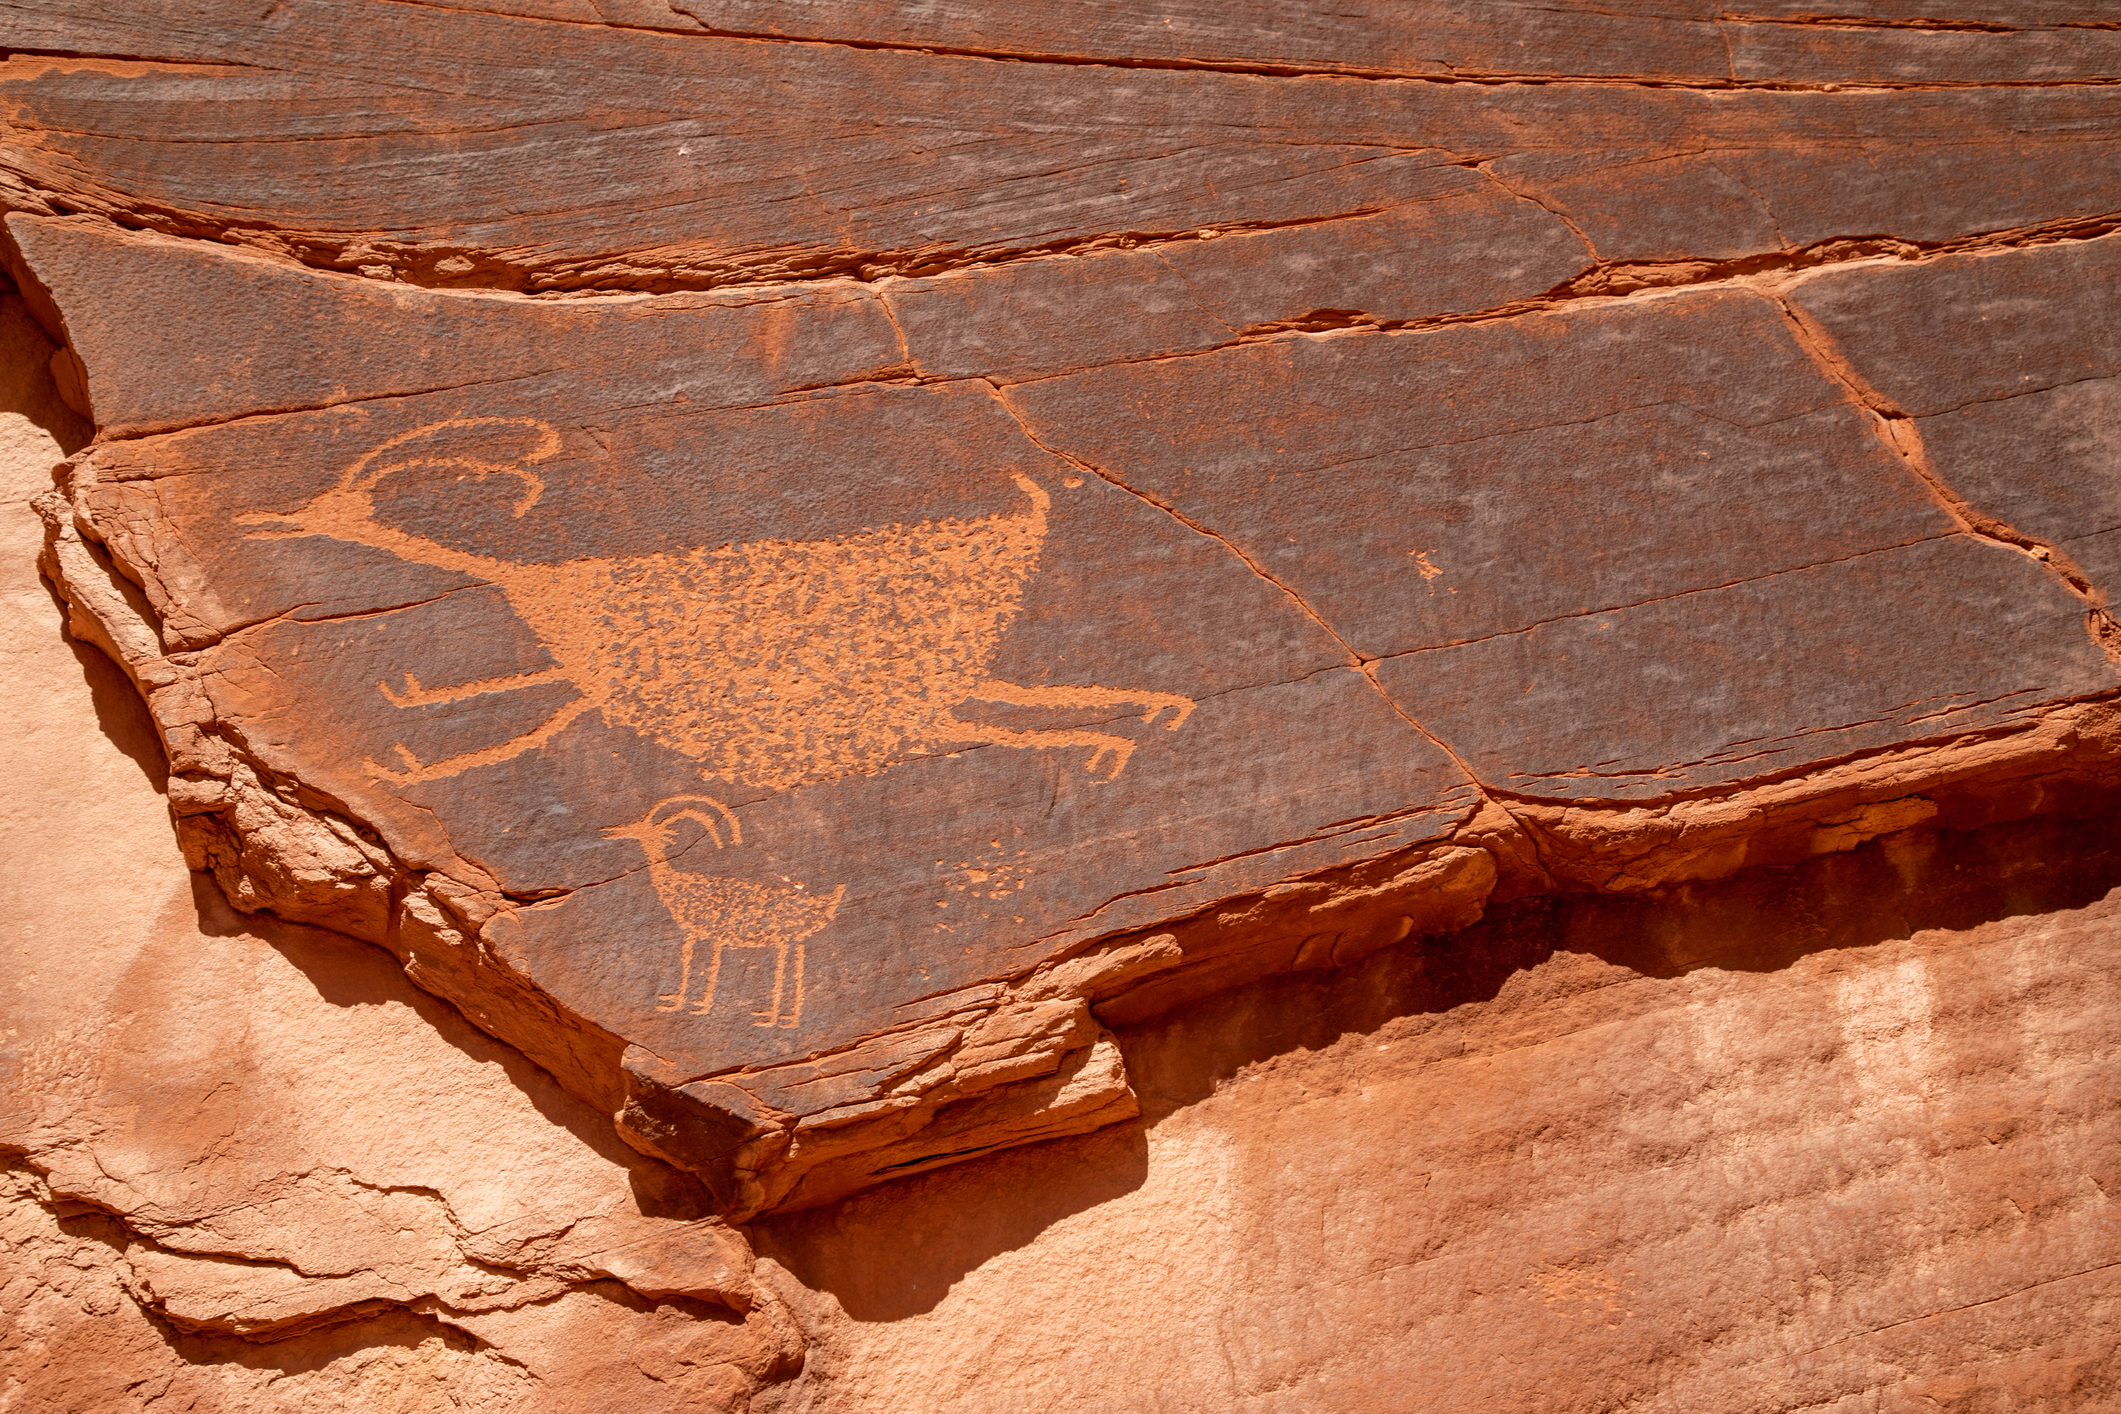 Ancient petroglyphs from the Anasazi in the Monument Valley